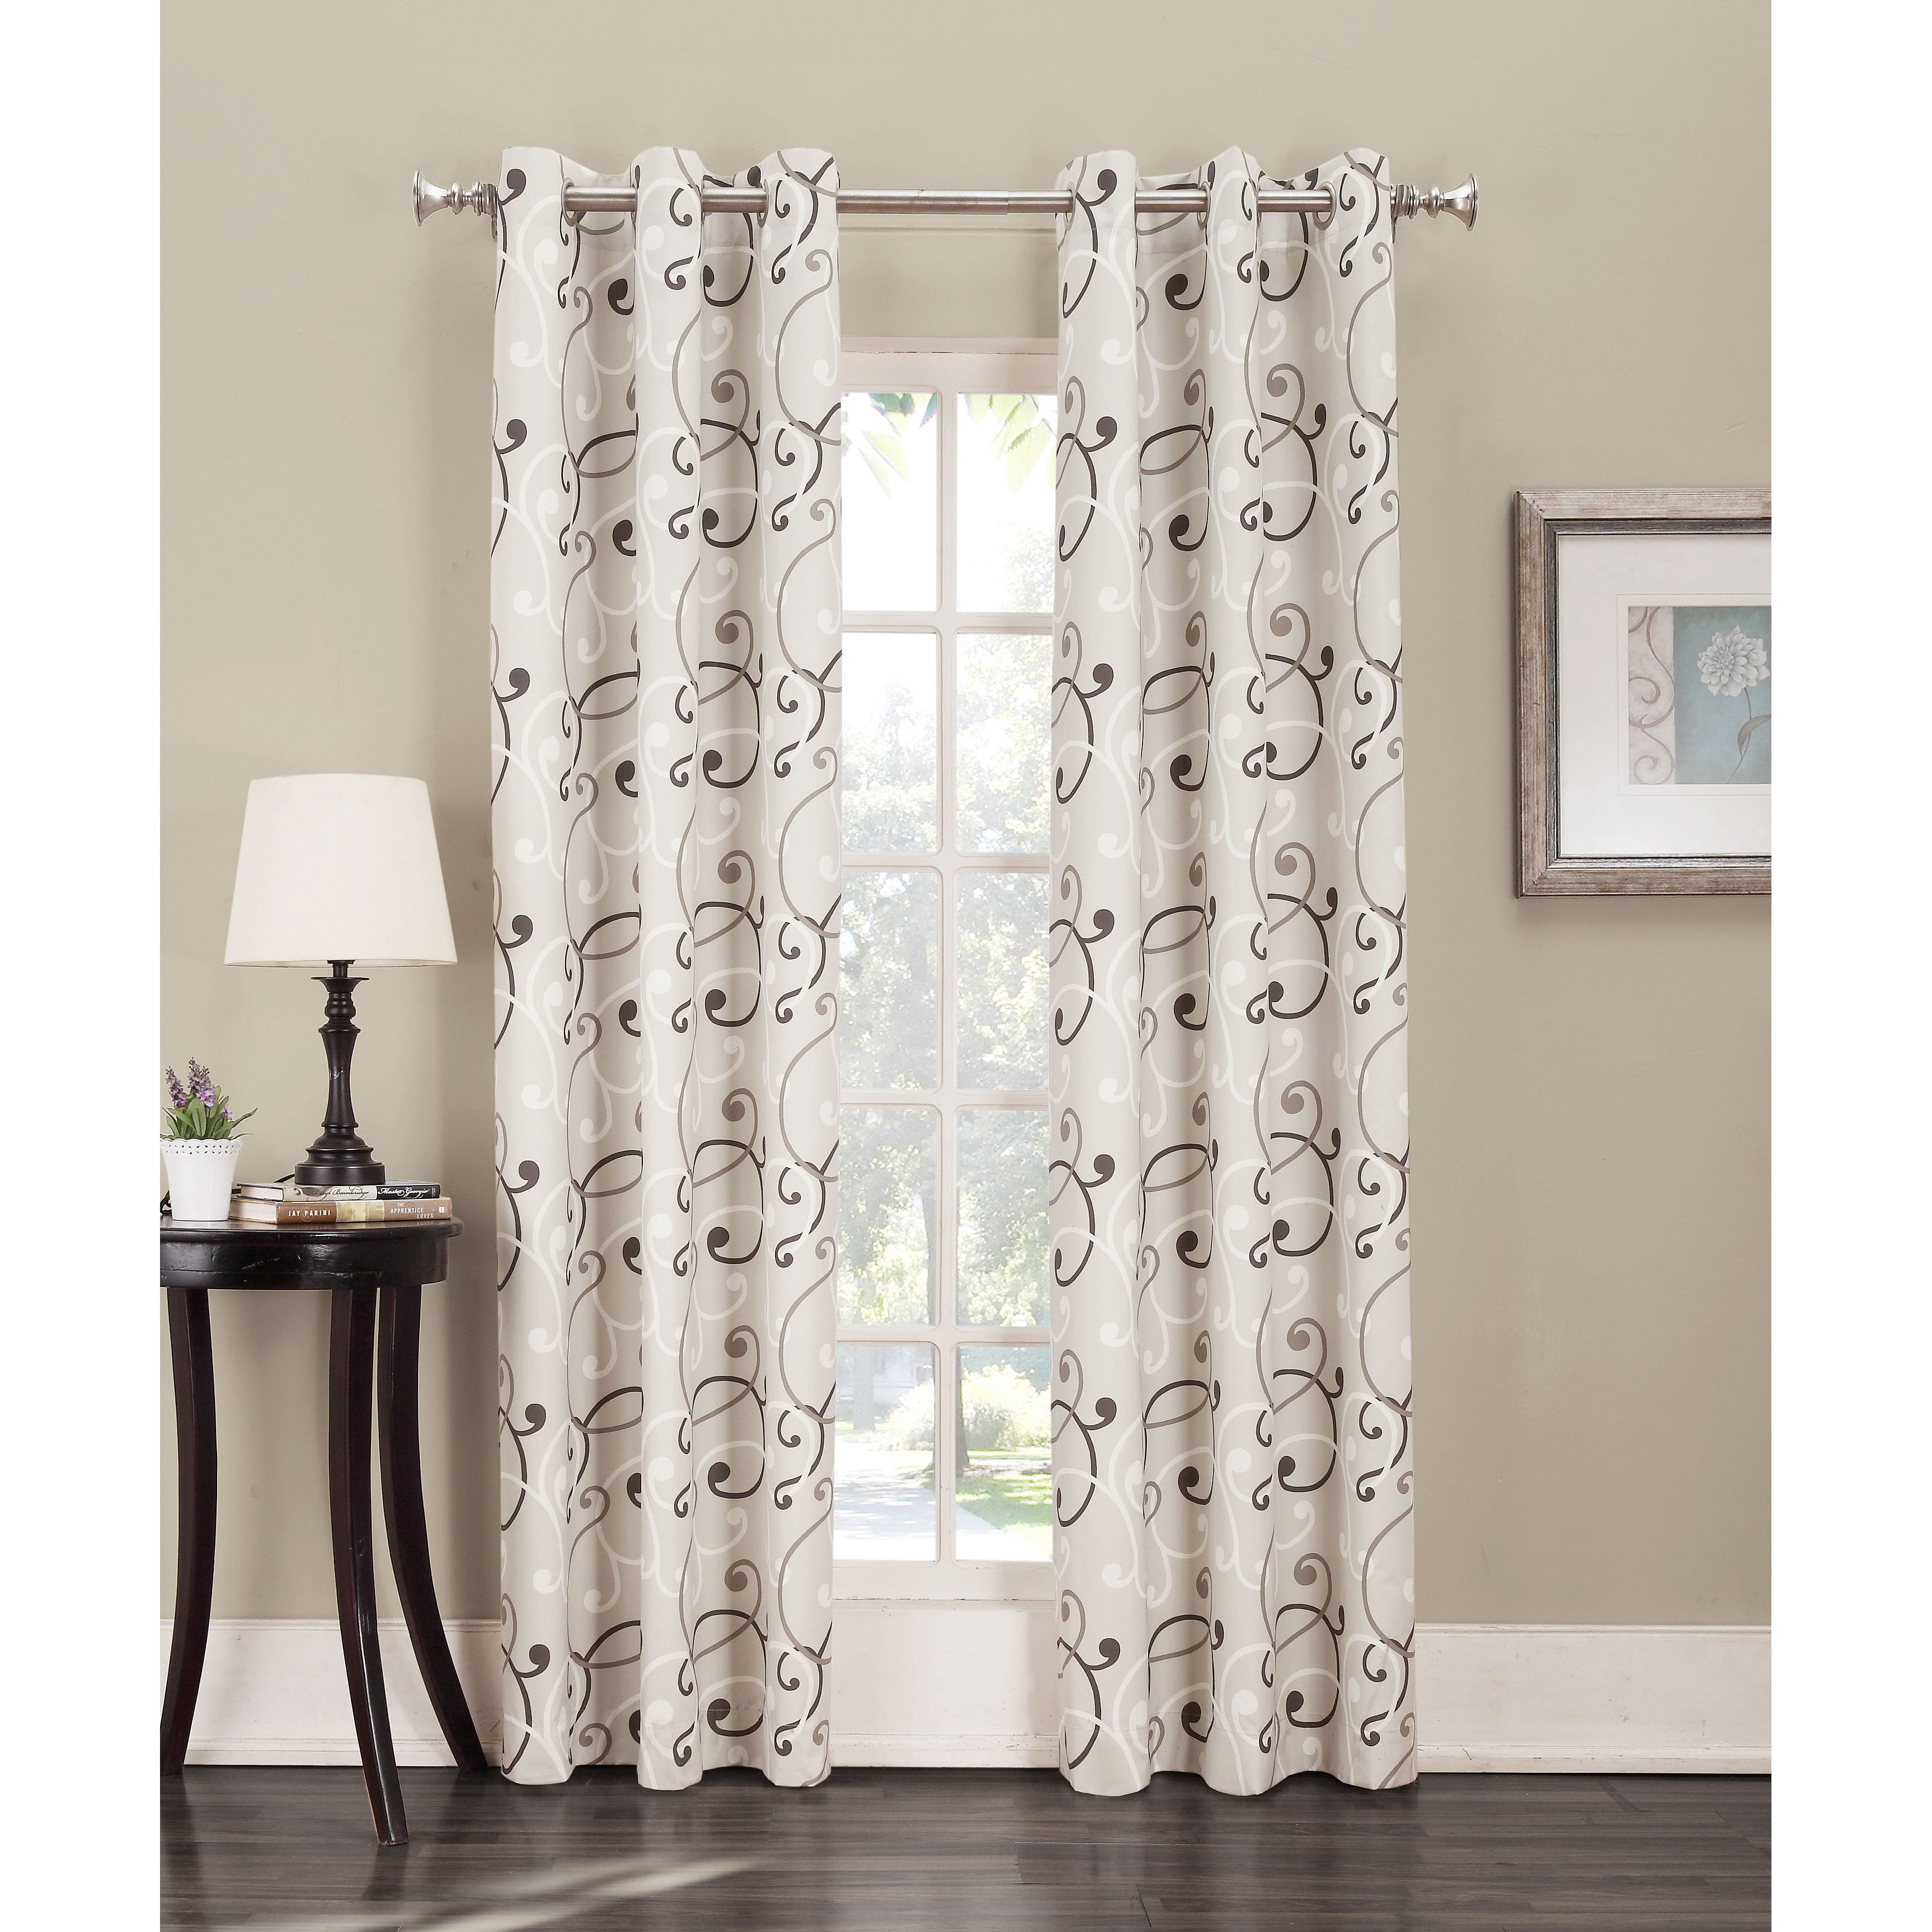 Sun Zero Belinda Scroll Print Thermal Insulted Energy Efficient Grommet Curtain Panel by S. Lichtenberg & Co.